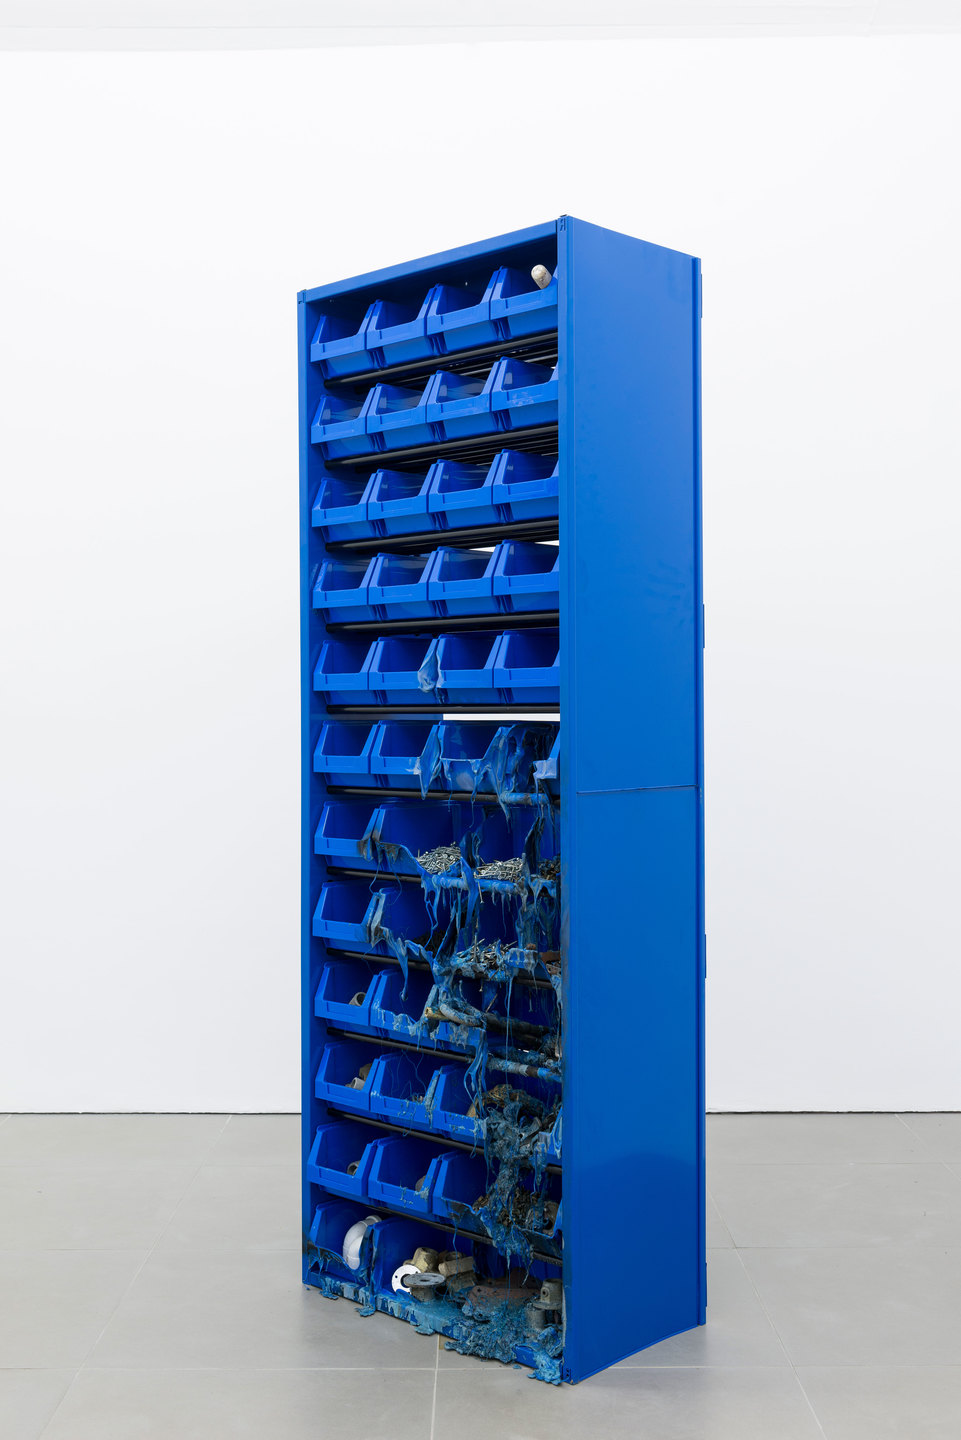 Matias Faldbakken, Parts Cabinet, 2013, metal cabinet, plastic bins, screws, bolts miscellaneous, 200 x 70.5 x 37cm, Cell Project Space